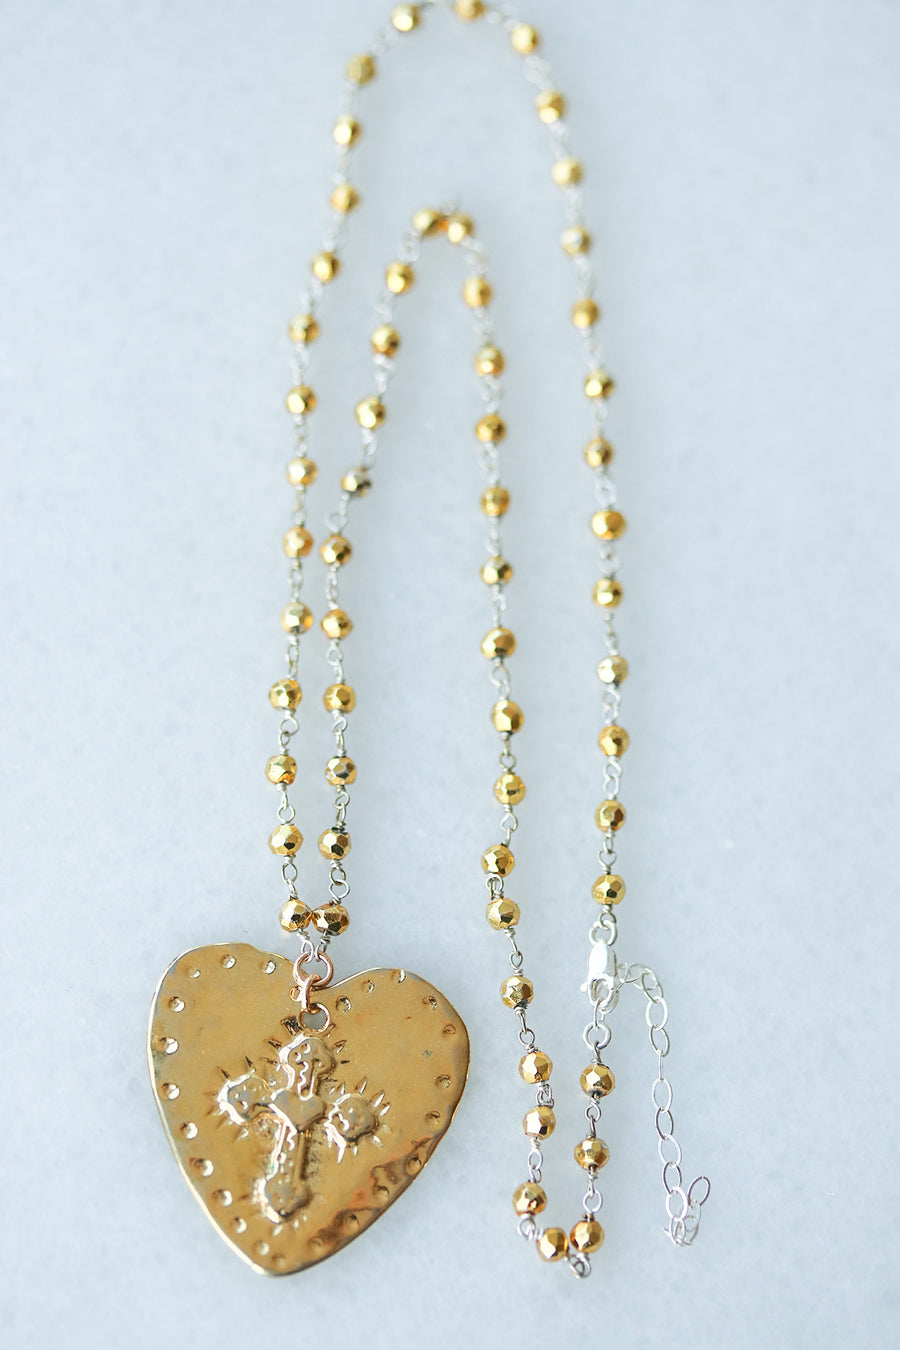 Heart Rosary Necklace